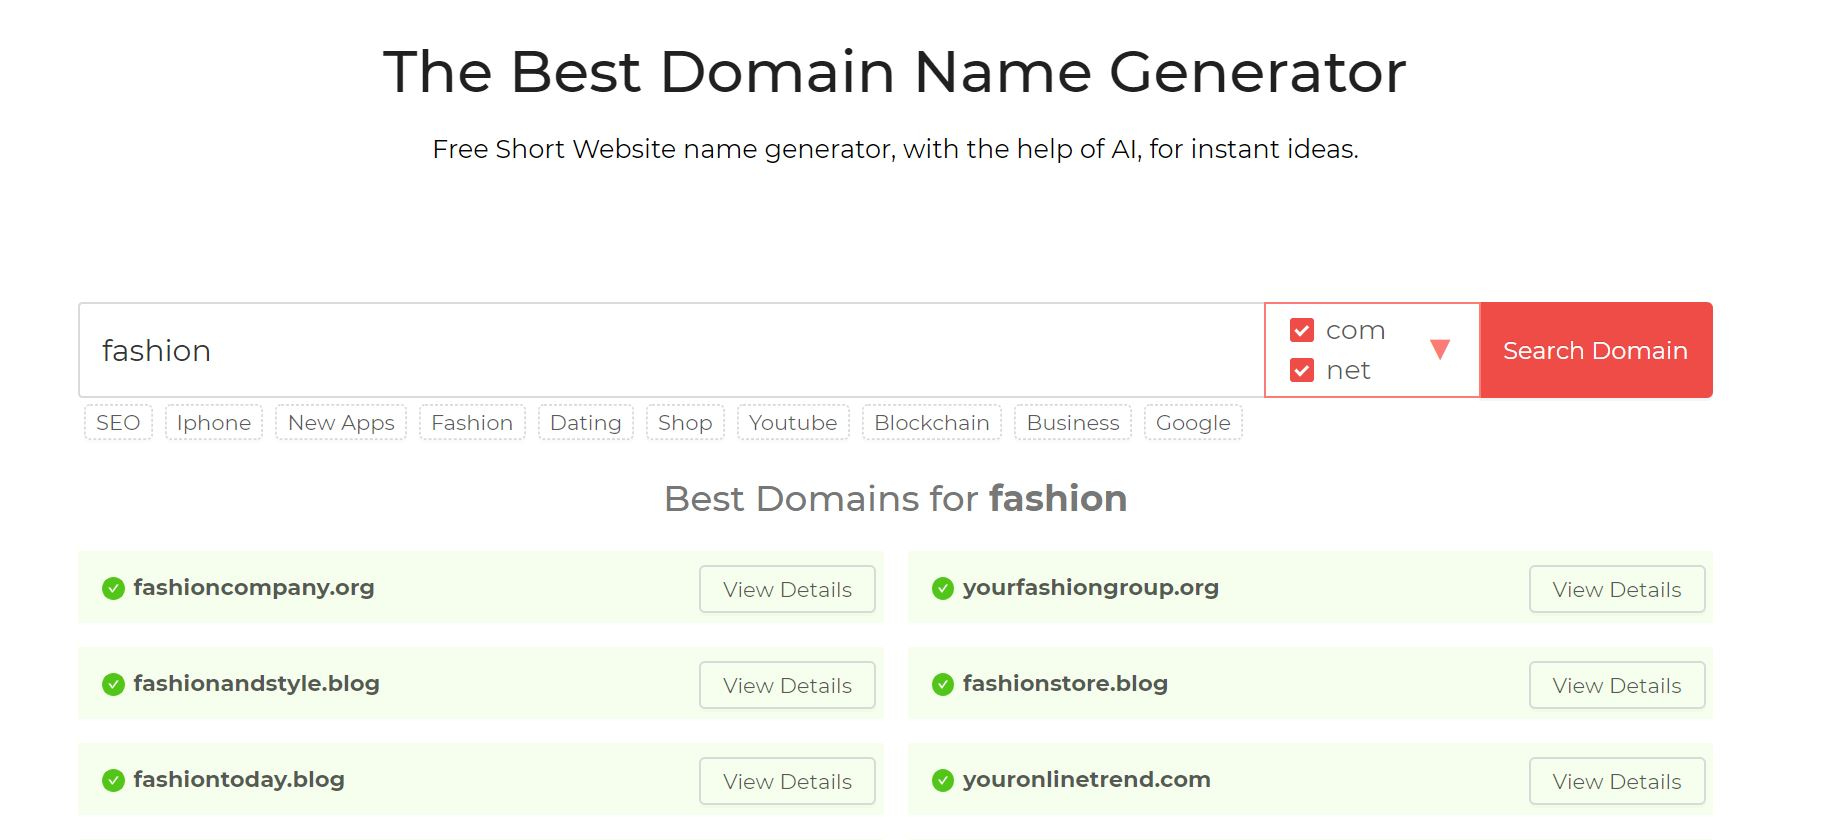 The DomainWheel domain name generator.